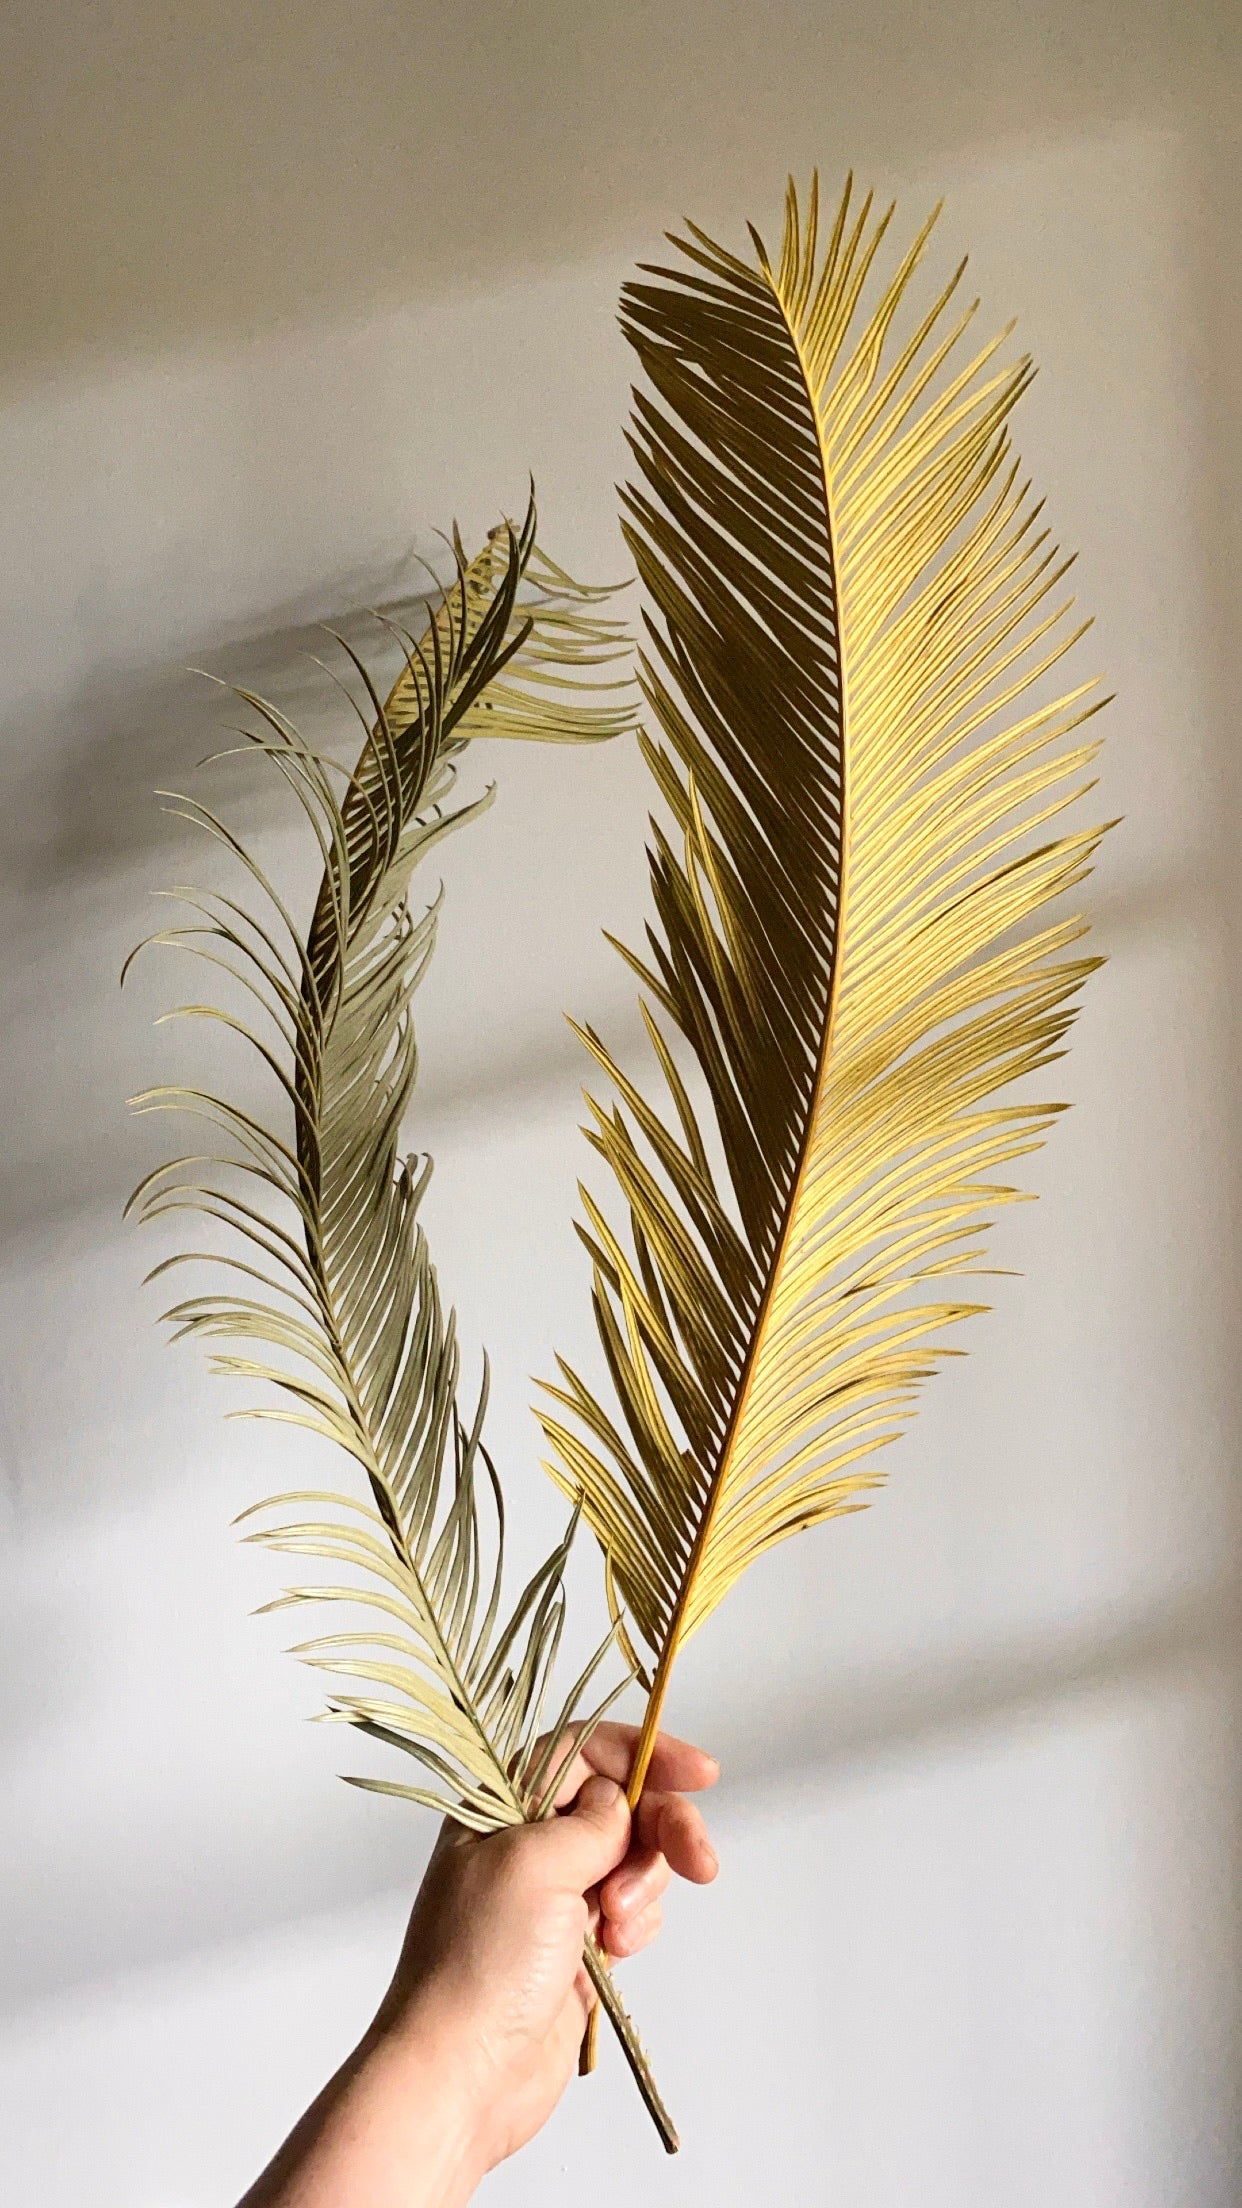 Dried Sago palm(2 stems)